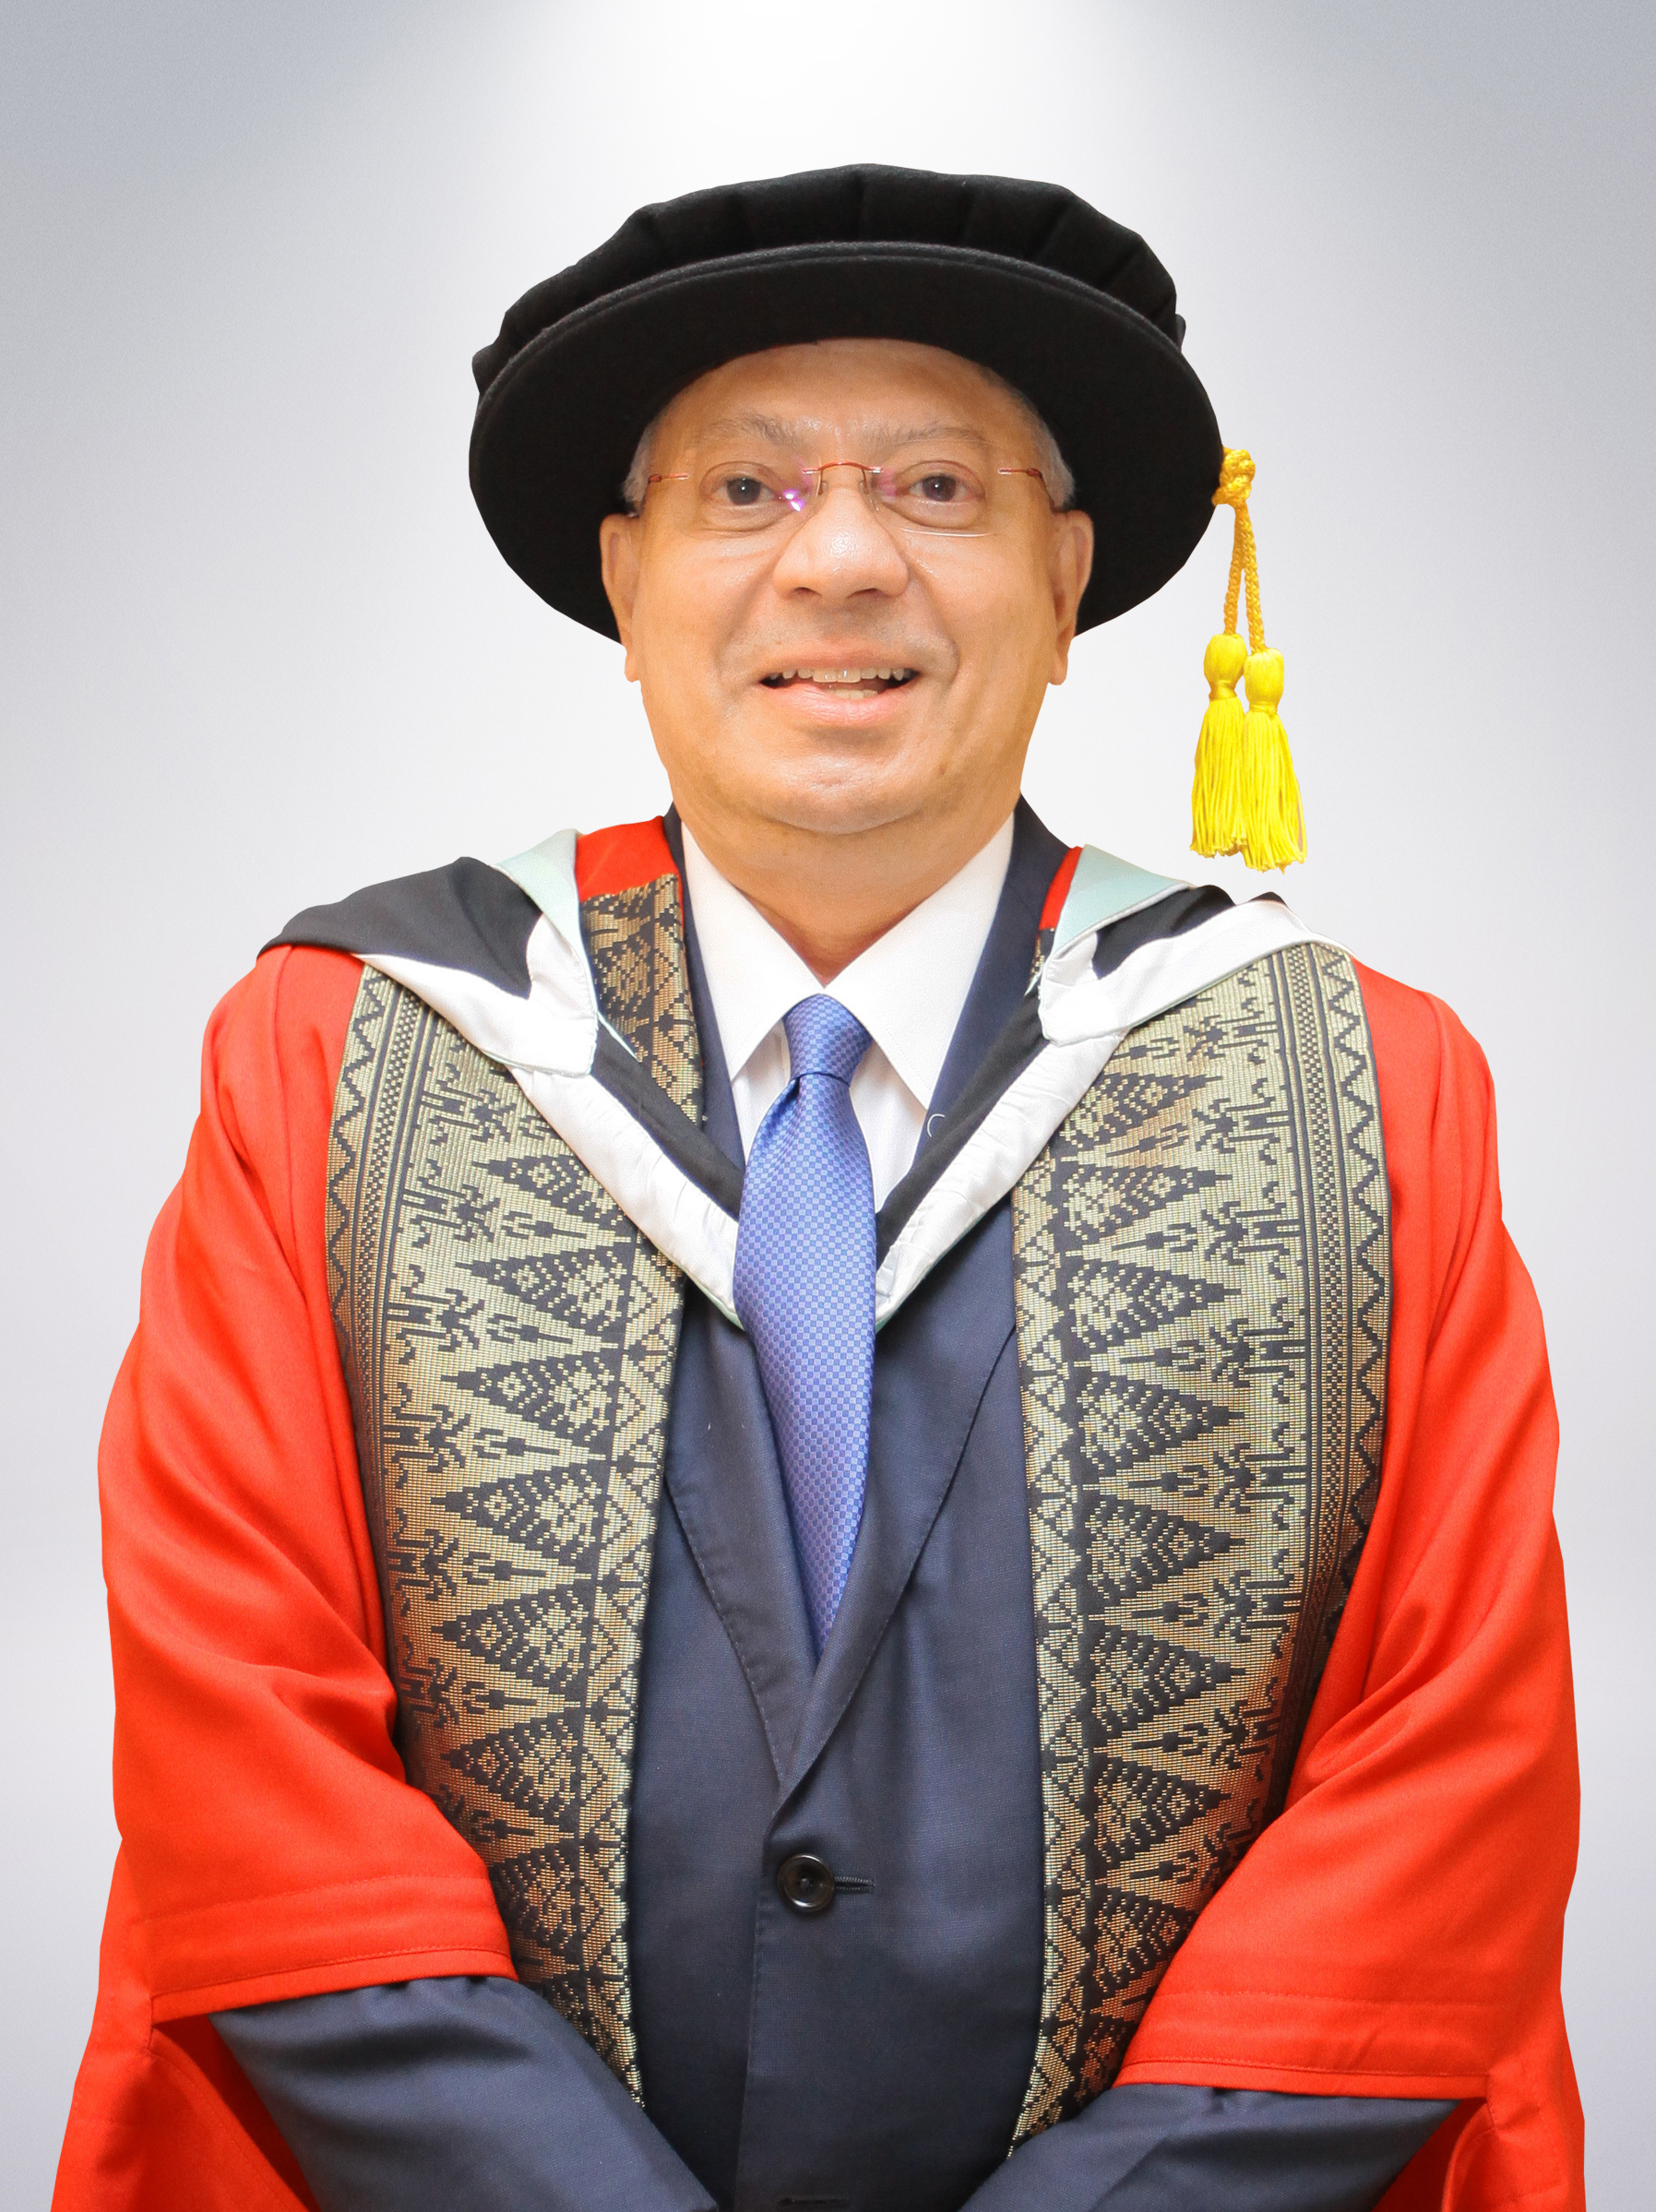 TAN SRI ABDUL RASHID HUSSAIN - DOCTOR OF BUSINESS